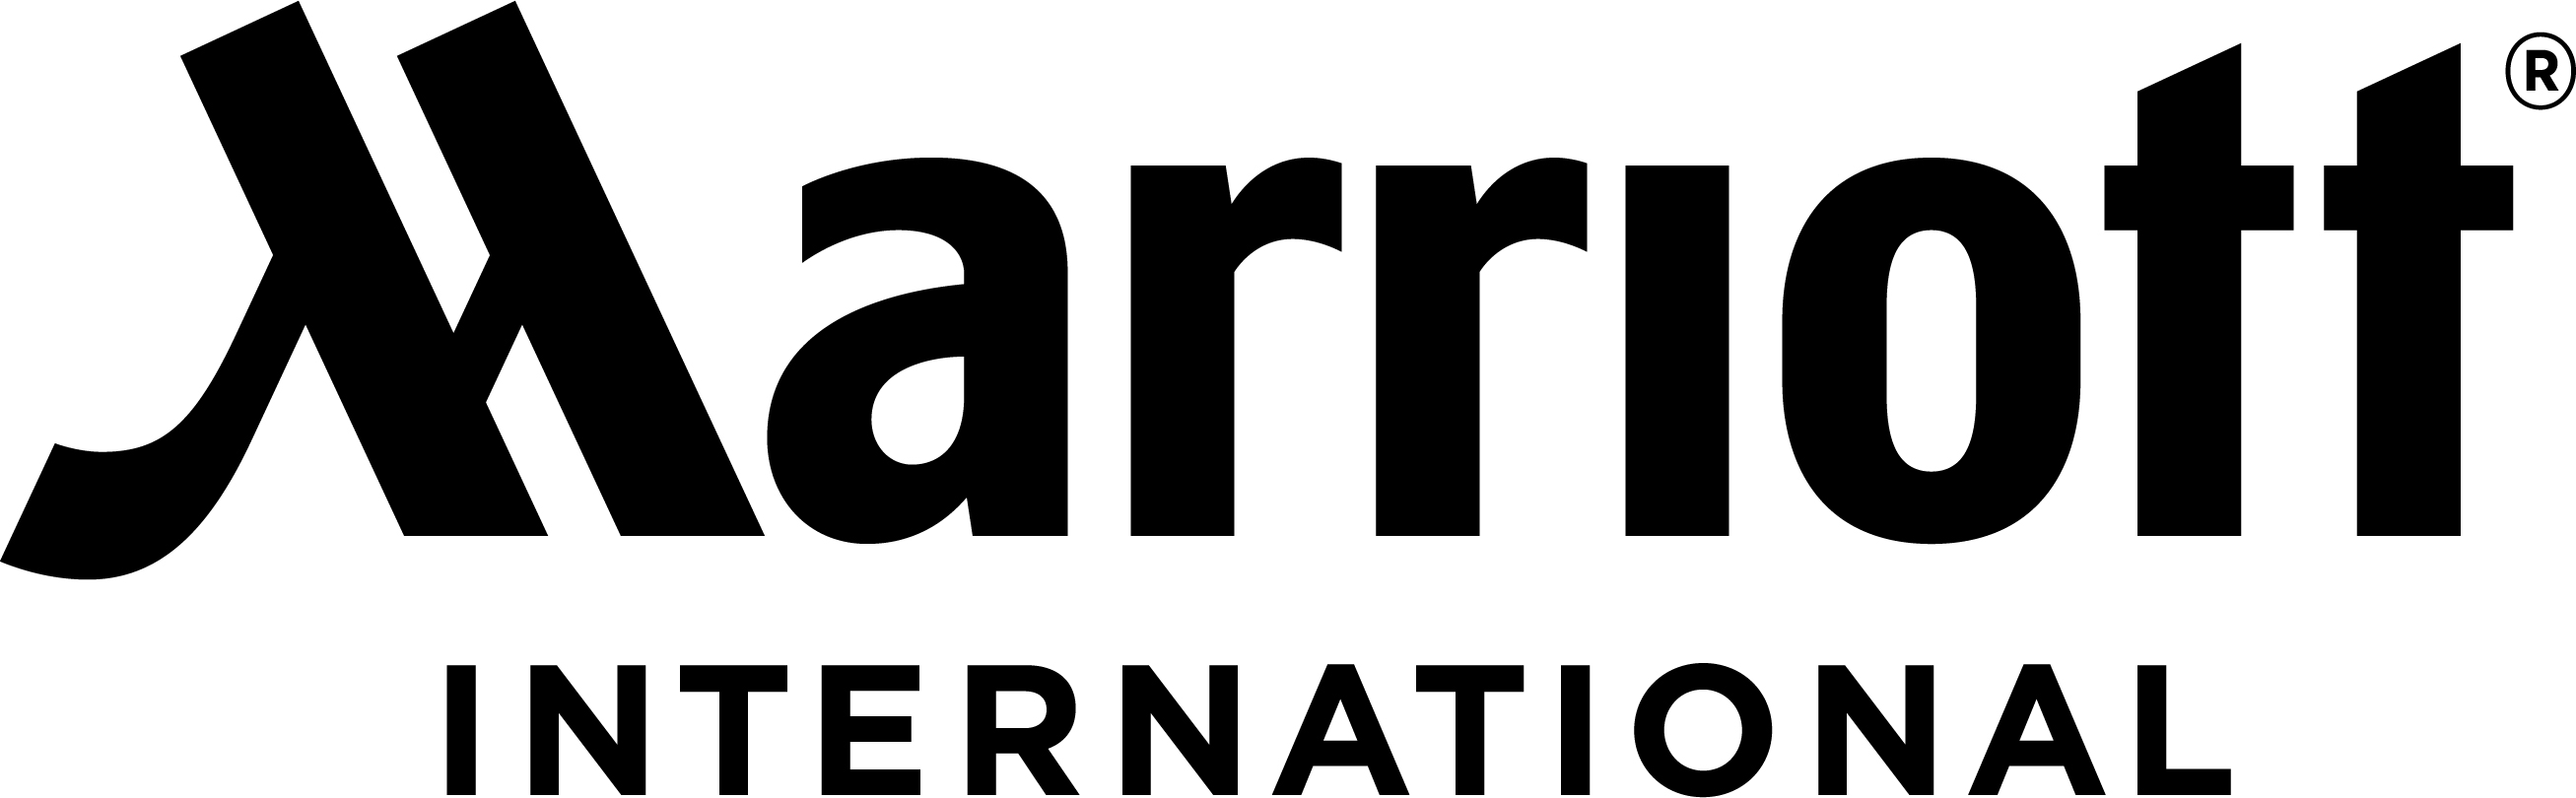 Marriott International-blk